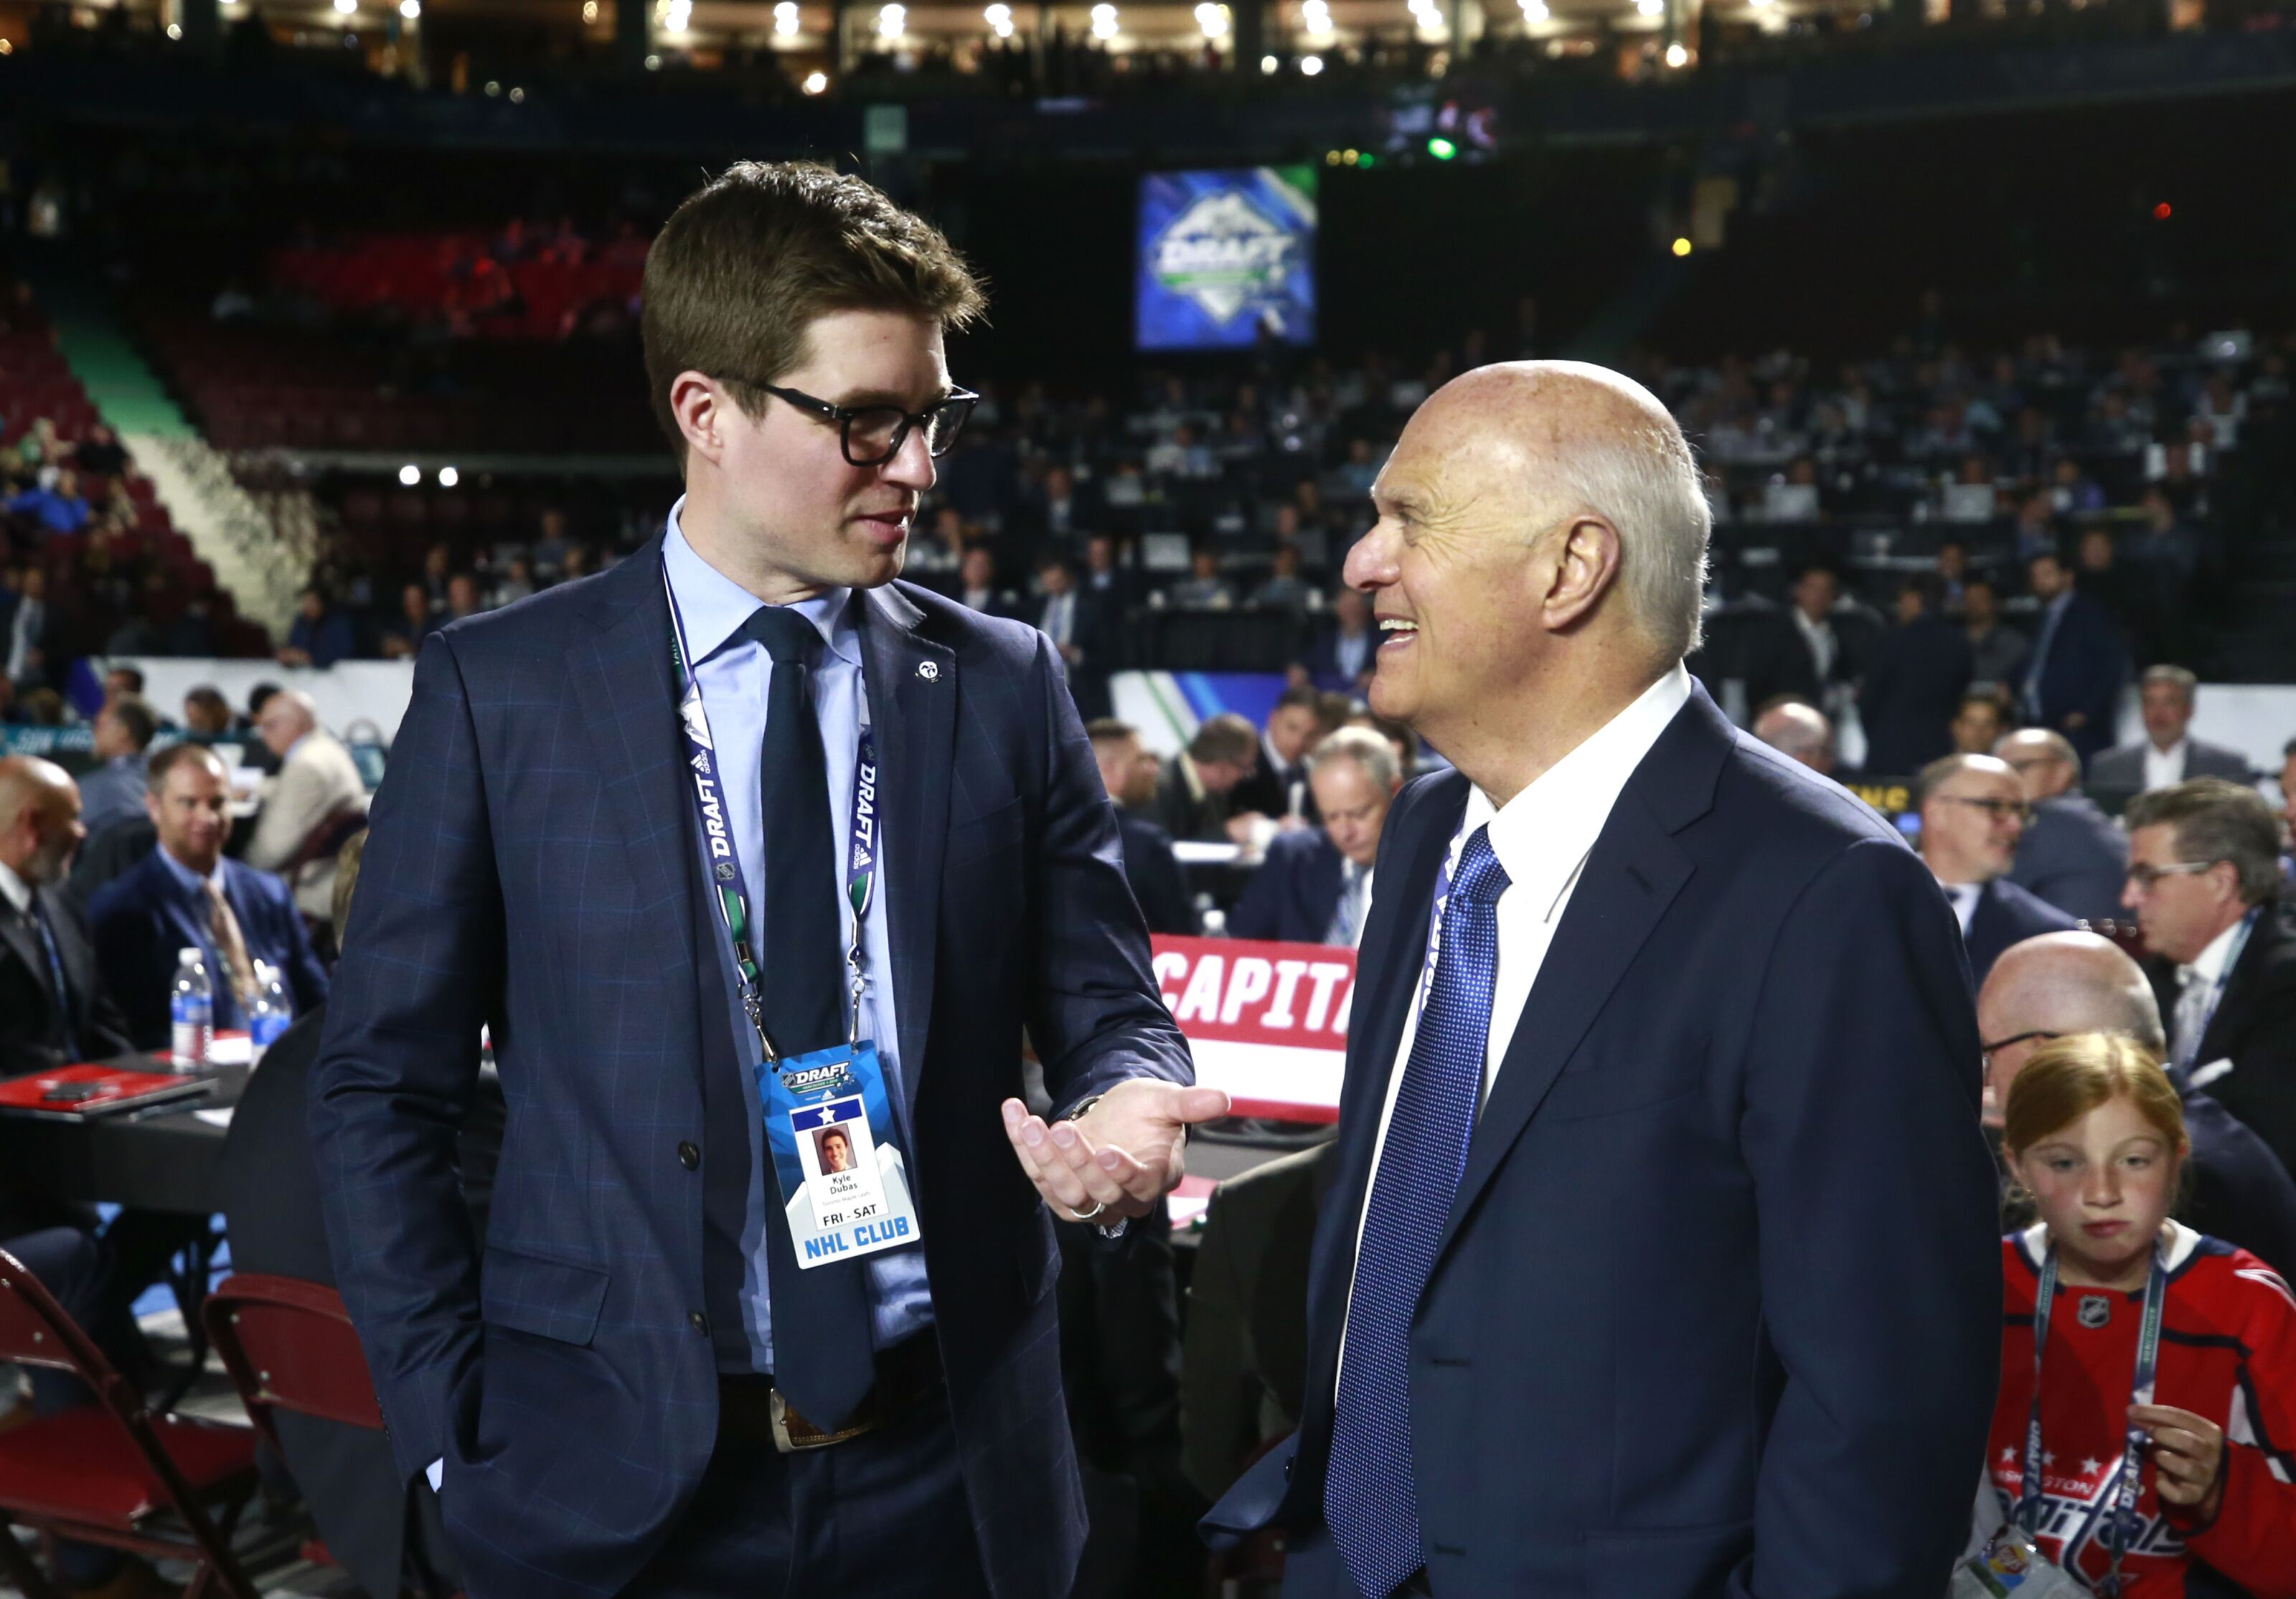 Toronto Maple Leafs: Timing of Lamoriello's departure could be haunting